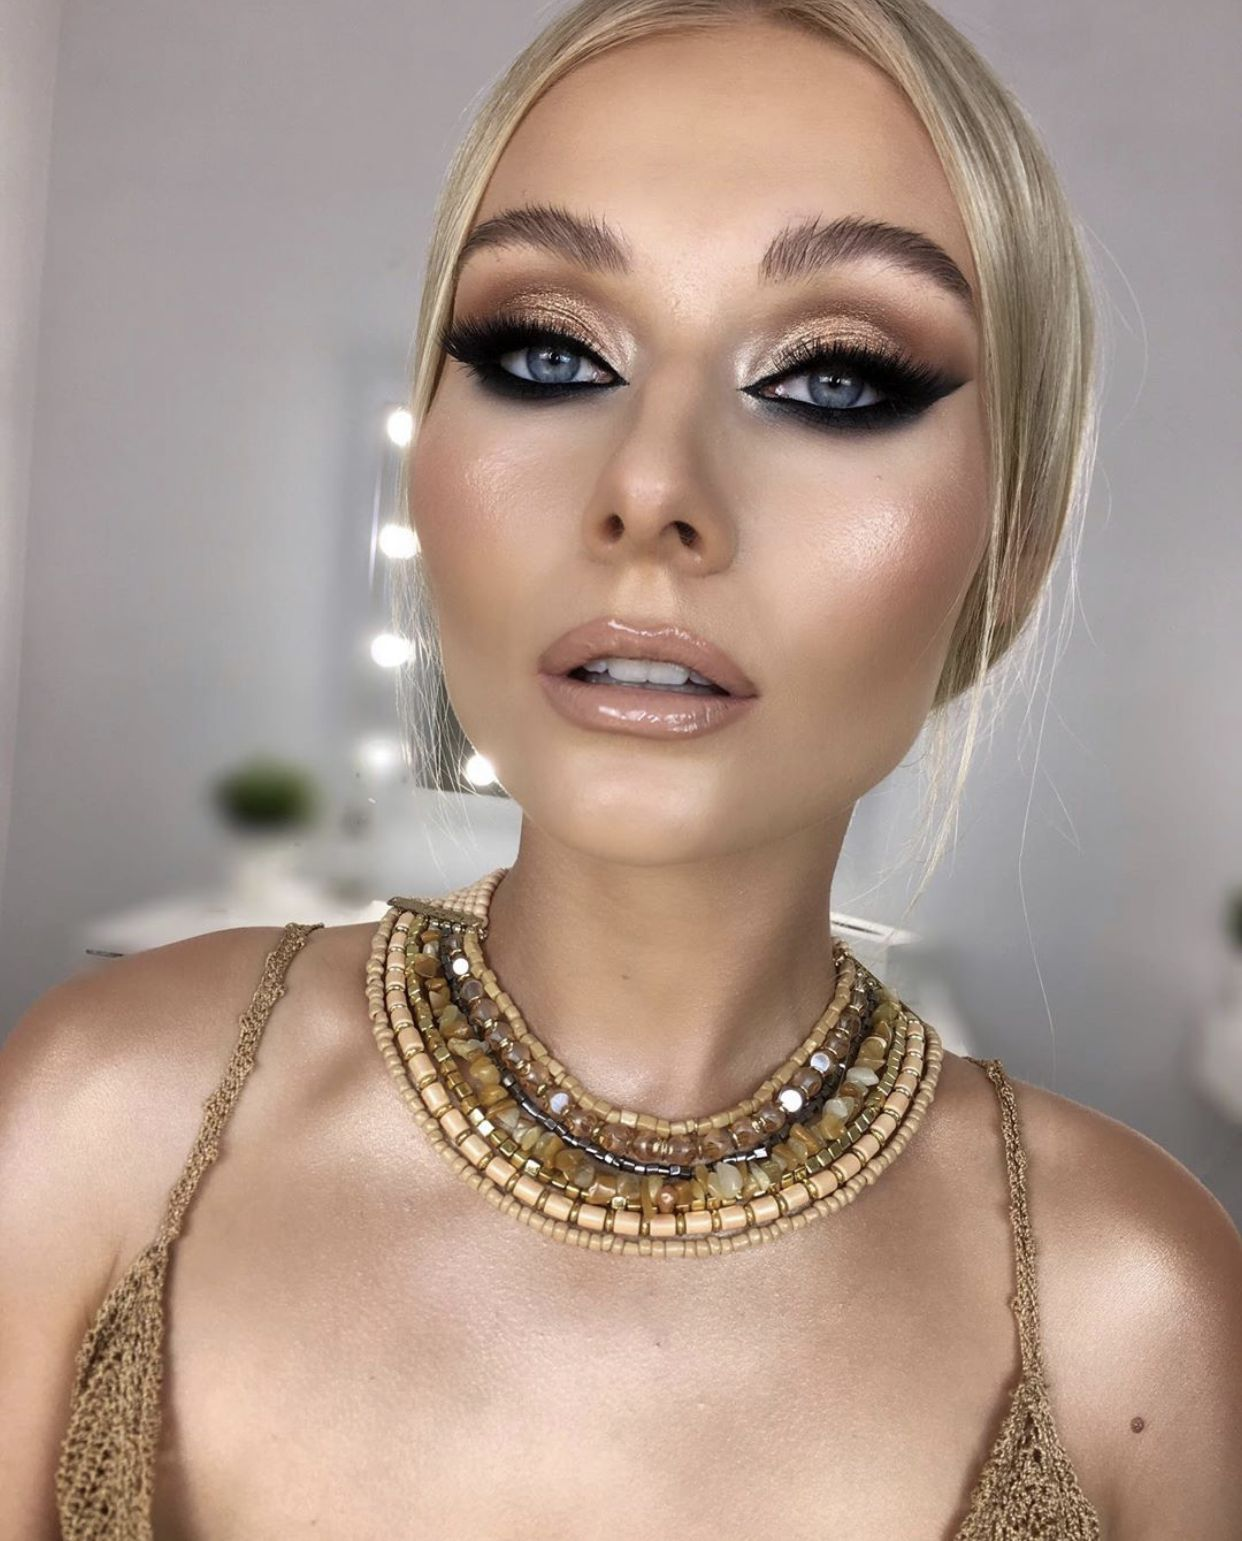 Pin by Jaelyn on make up goals Stunning makeup